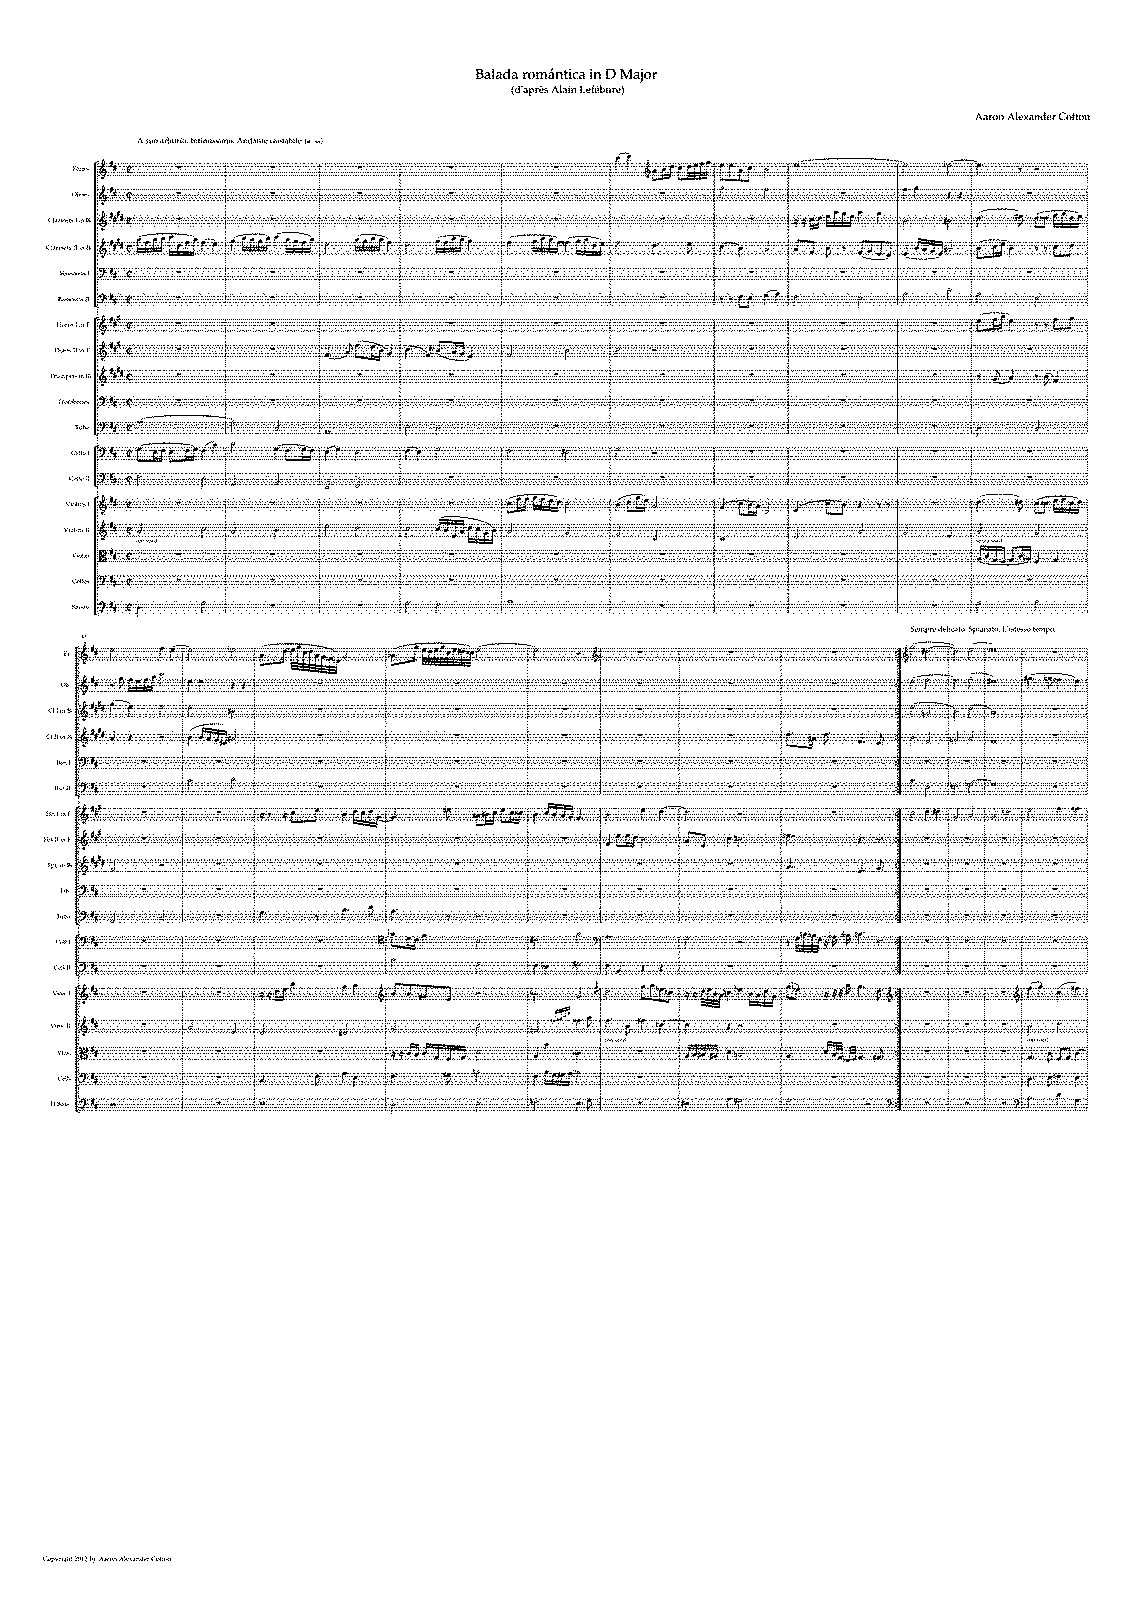 PMLP364605-Balada romántica in D Major by Aaron Alexander Cotton.pdf